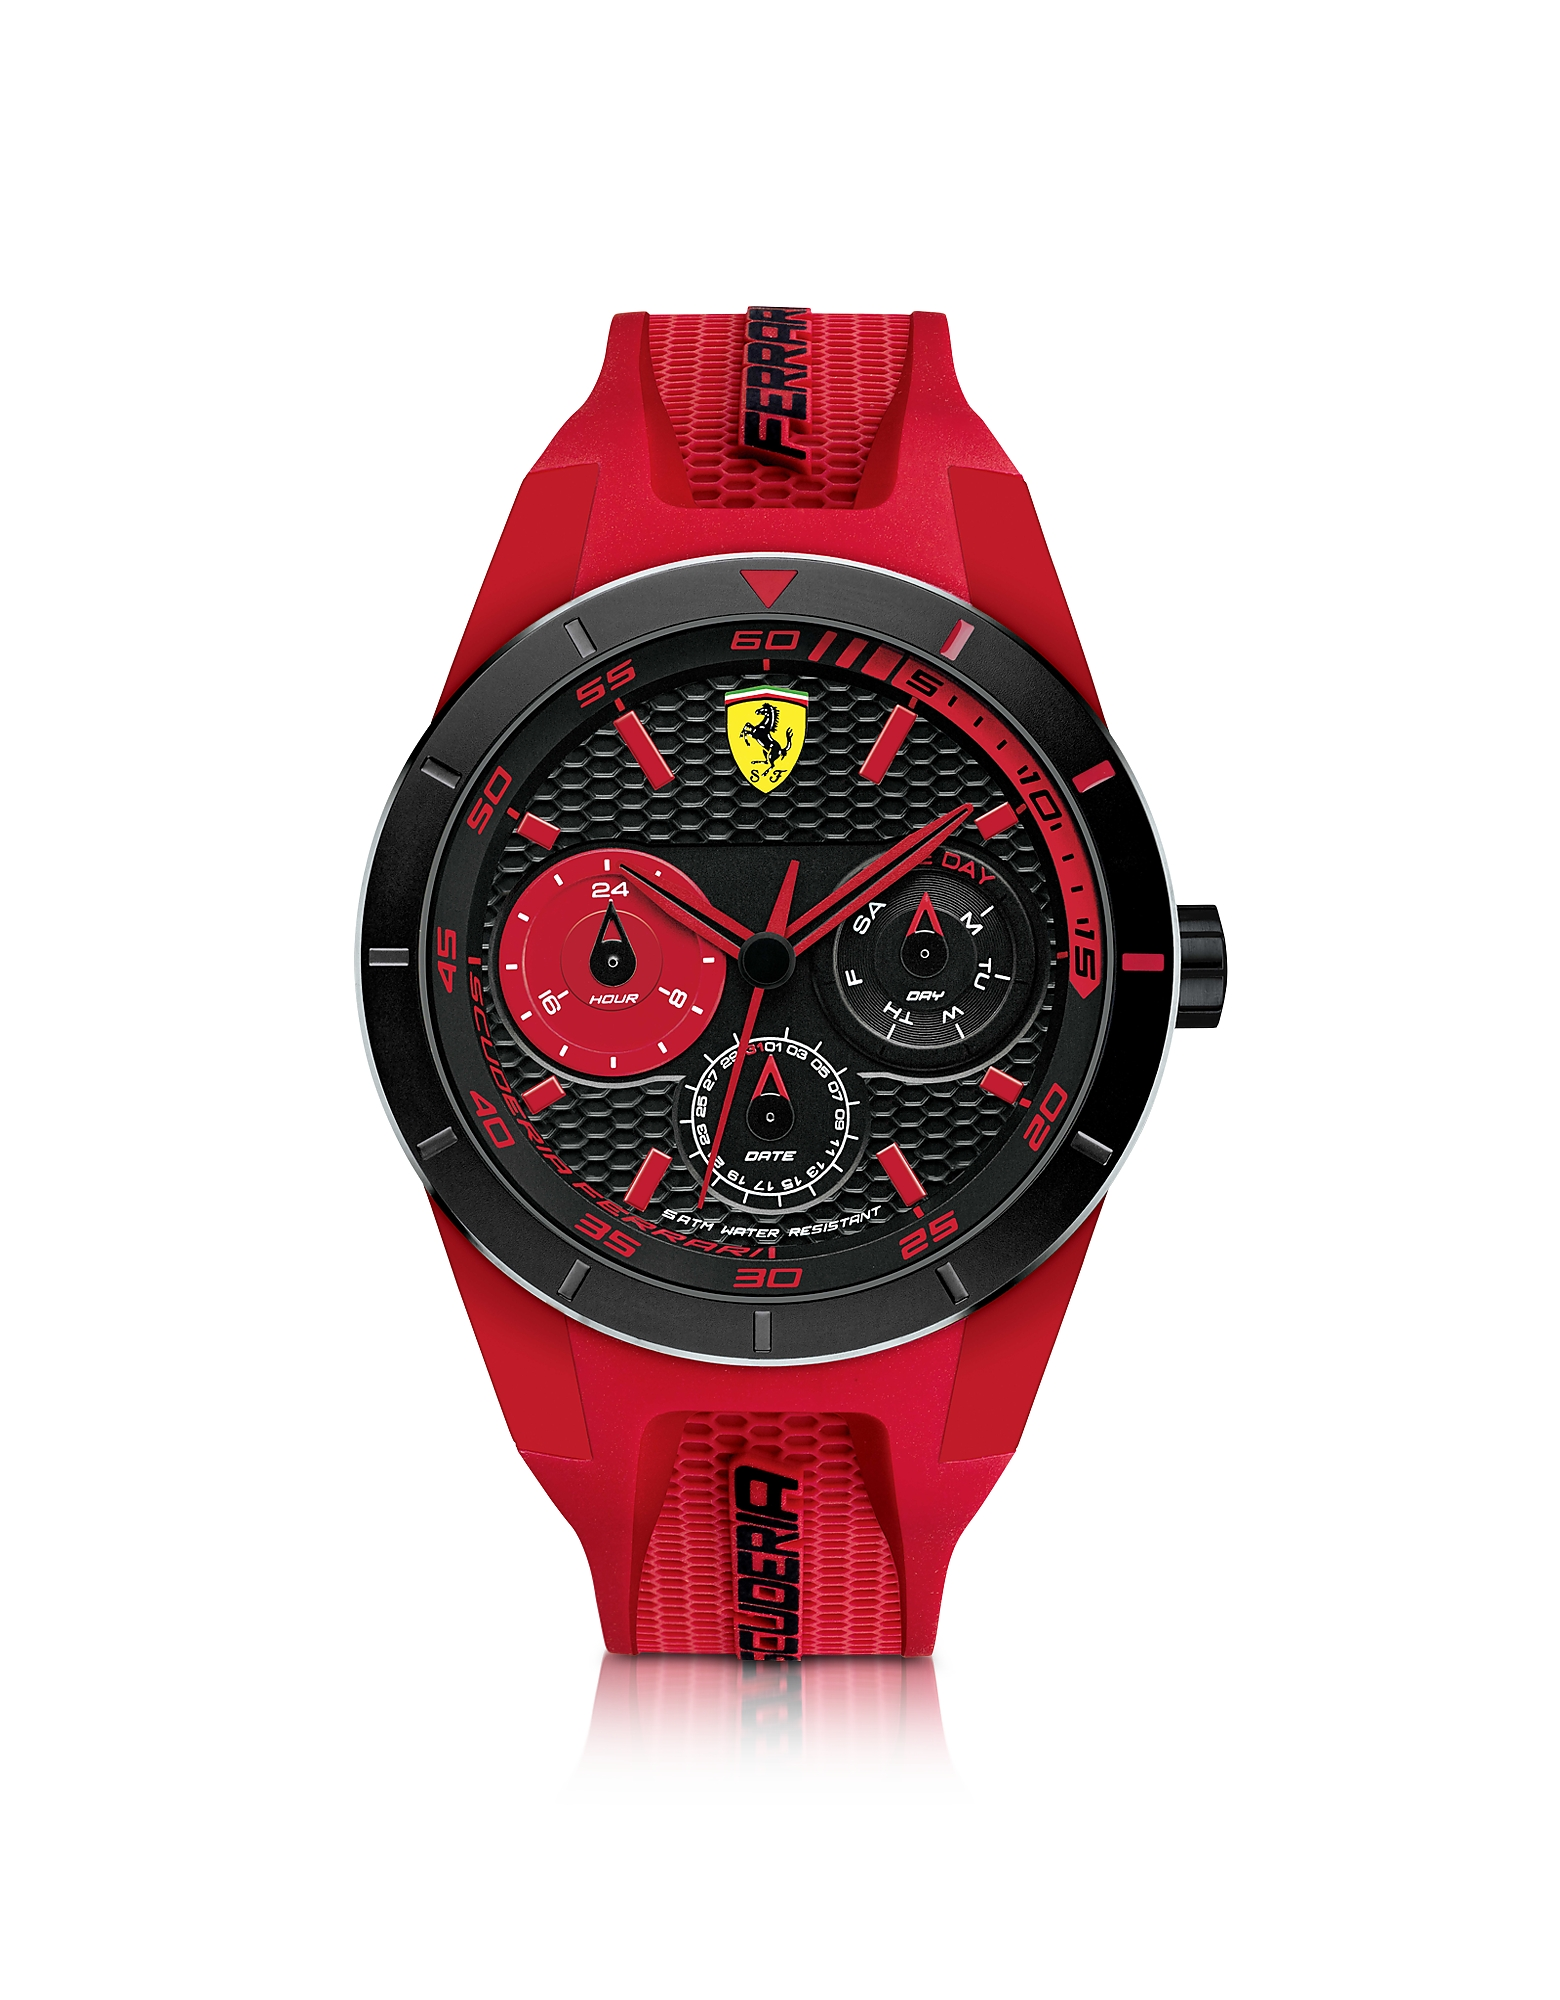 Ferrari Men's Watches, Red Rev T Black Stainless Steel Case and Red Silicone Strap Men's Watch